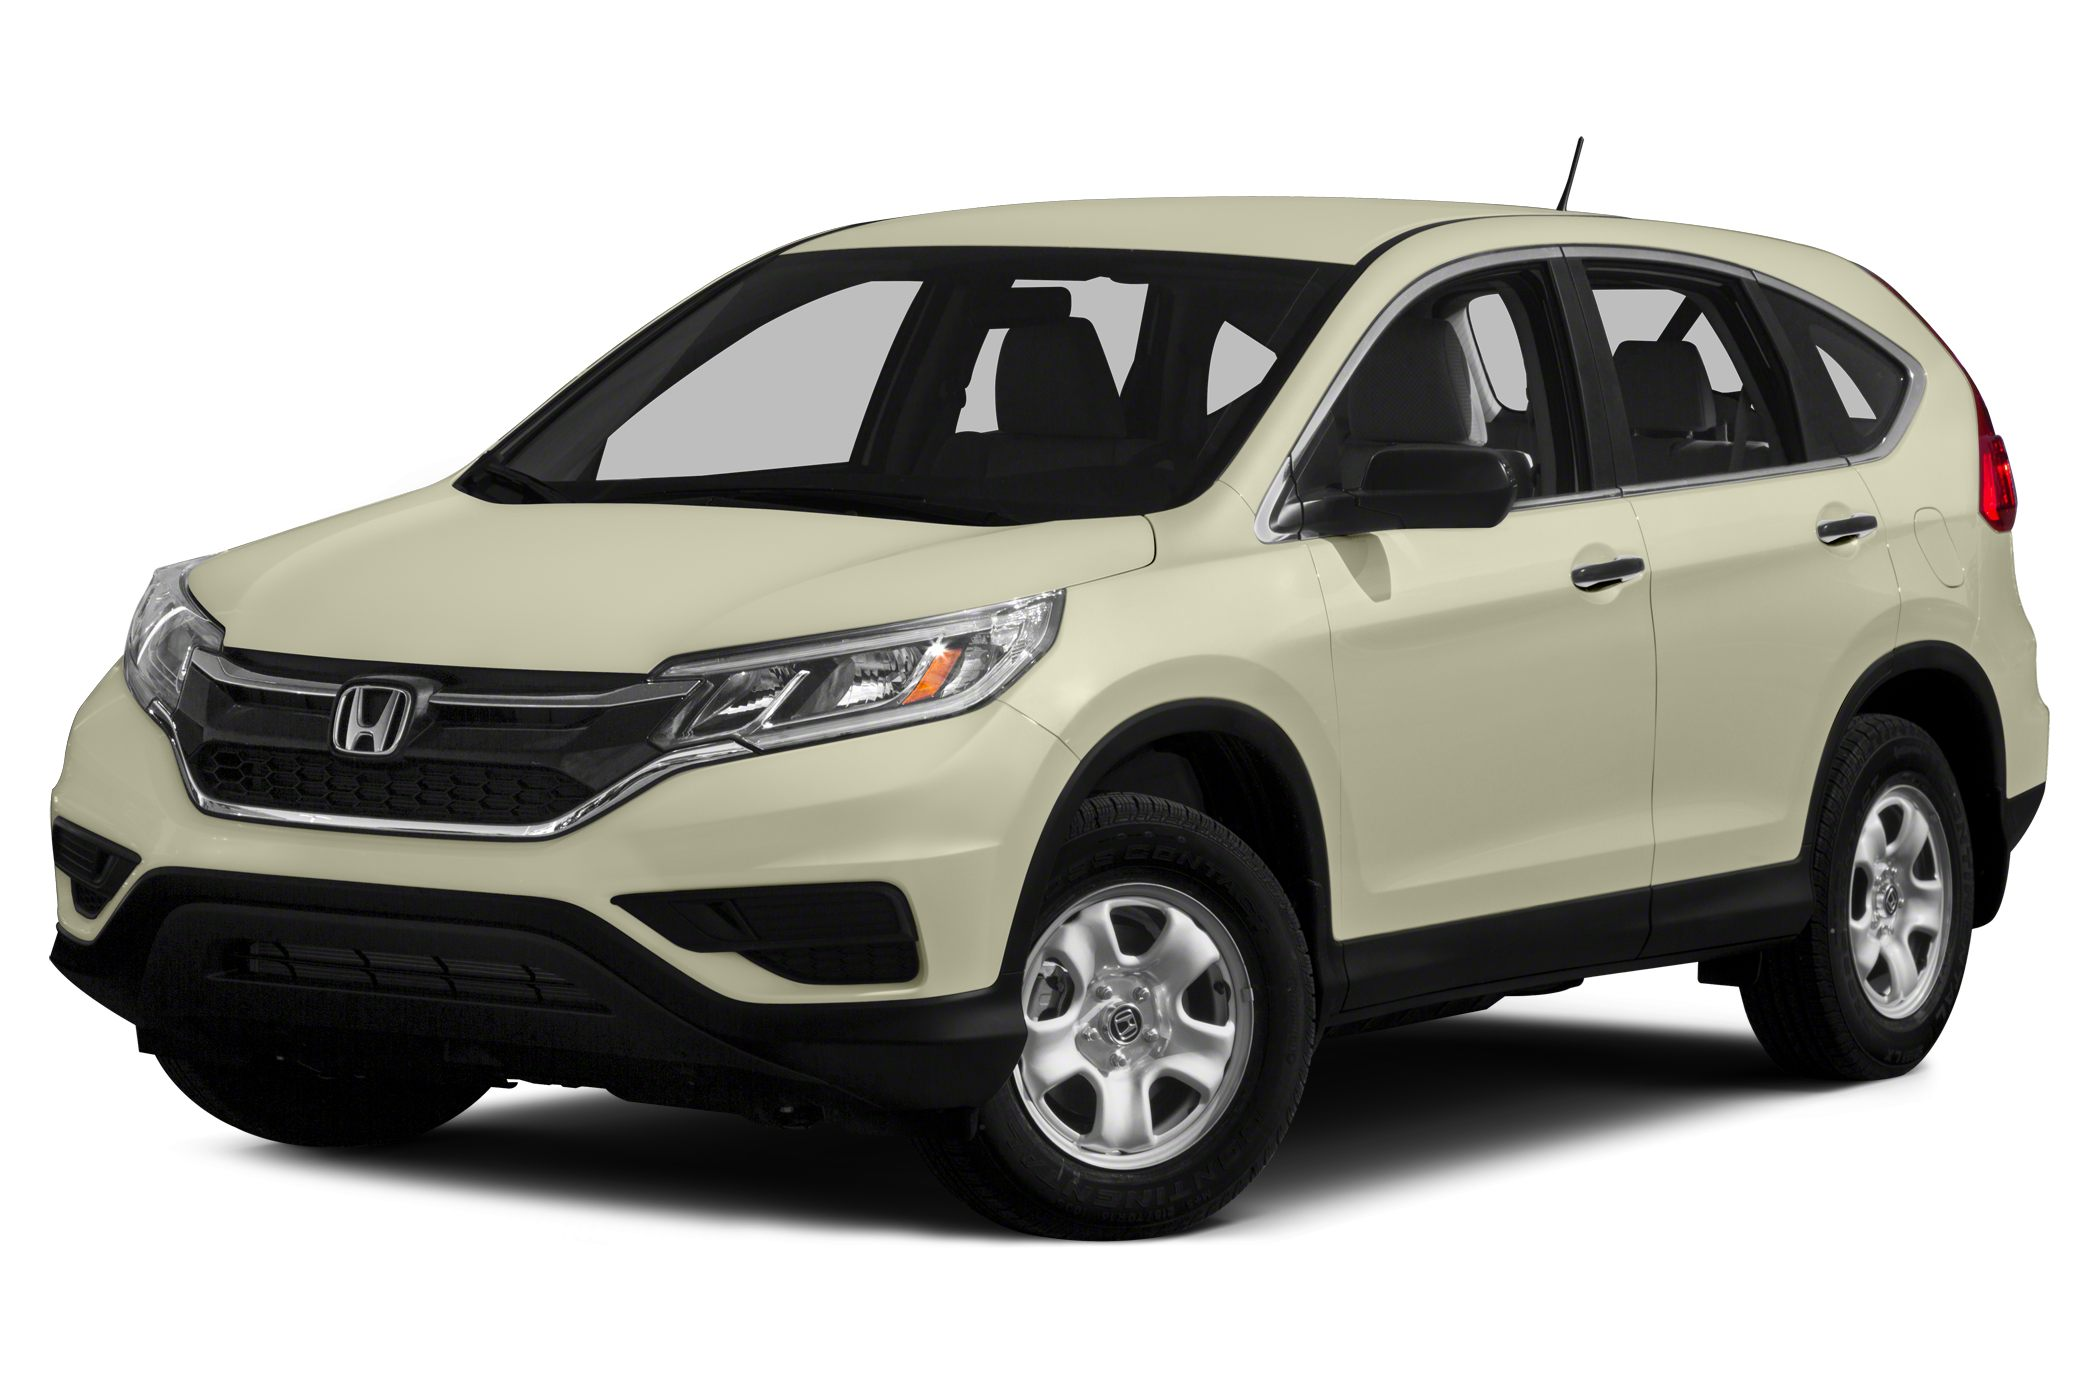 2015 Honda CR-V LX SUV for sale in Greeley for $25,575 with 0 miles